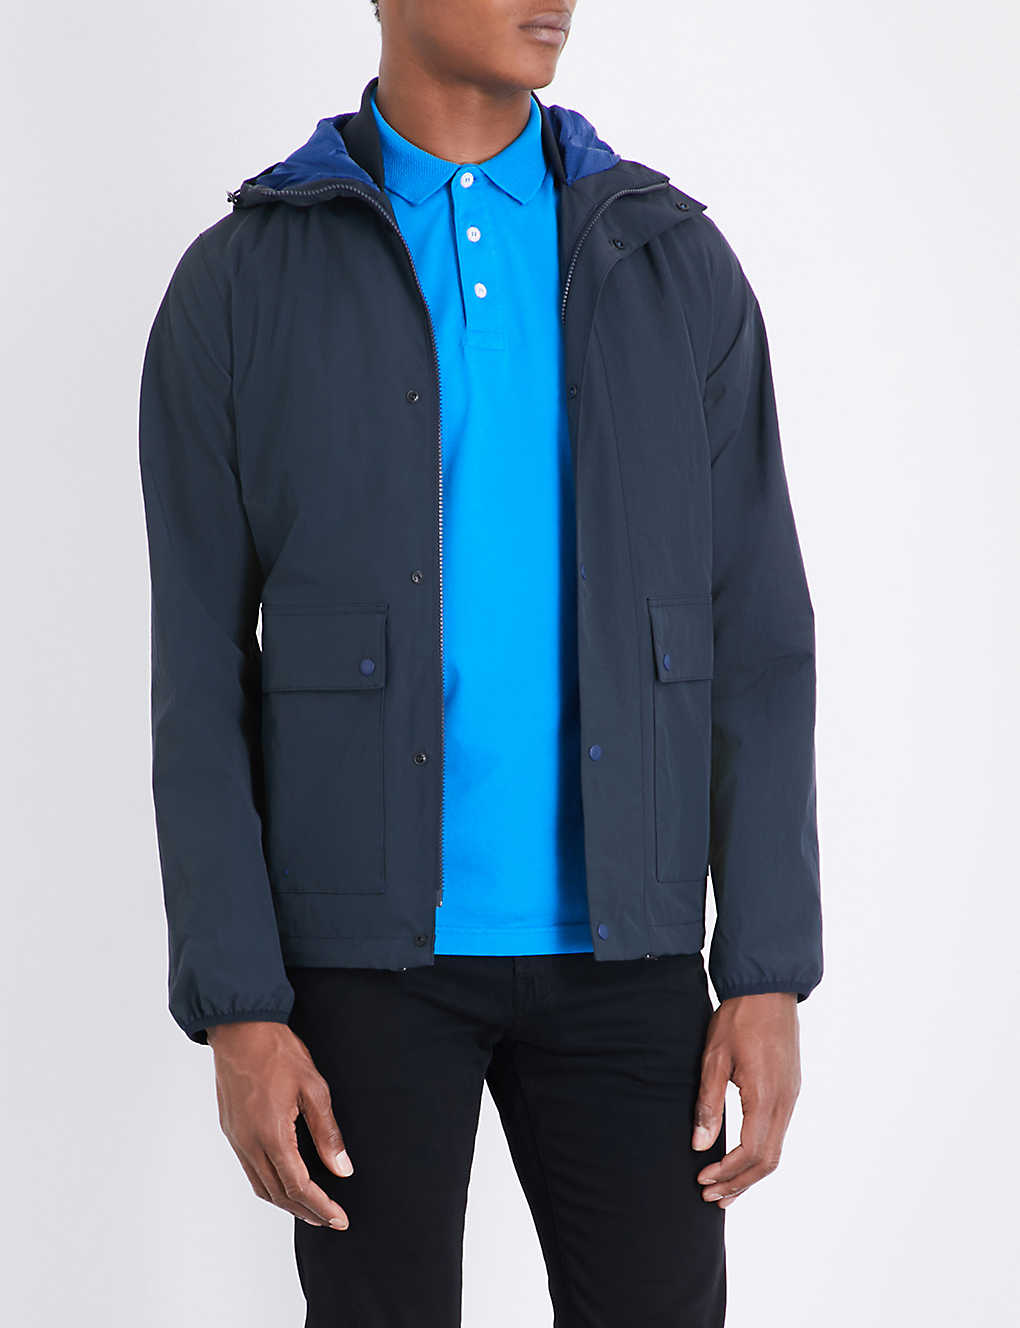 Lightweight - Coats & jackets - Clothing - Mens - Selfridges ...